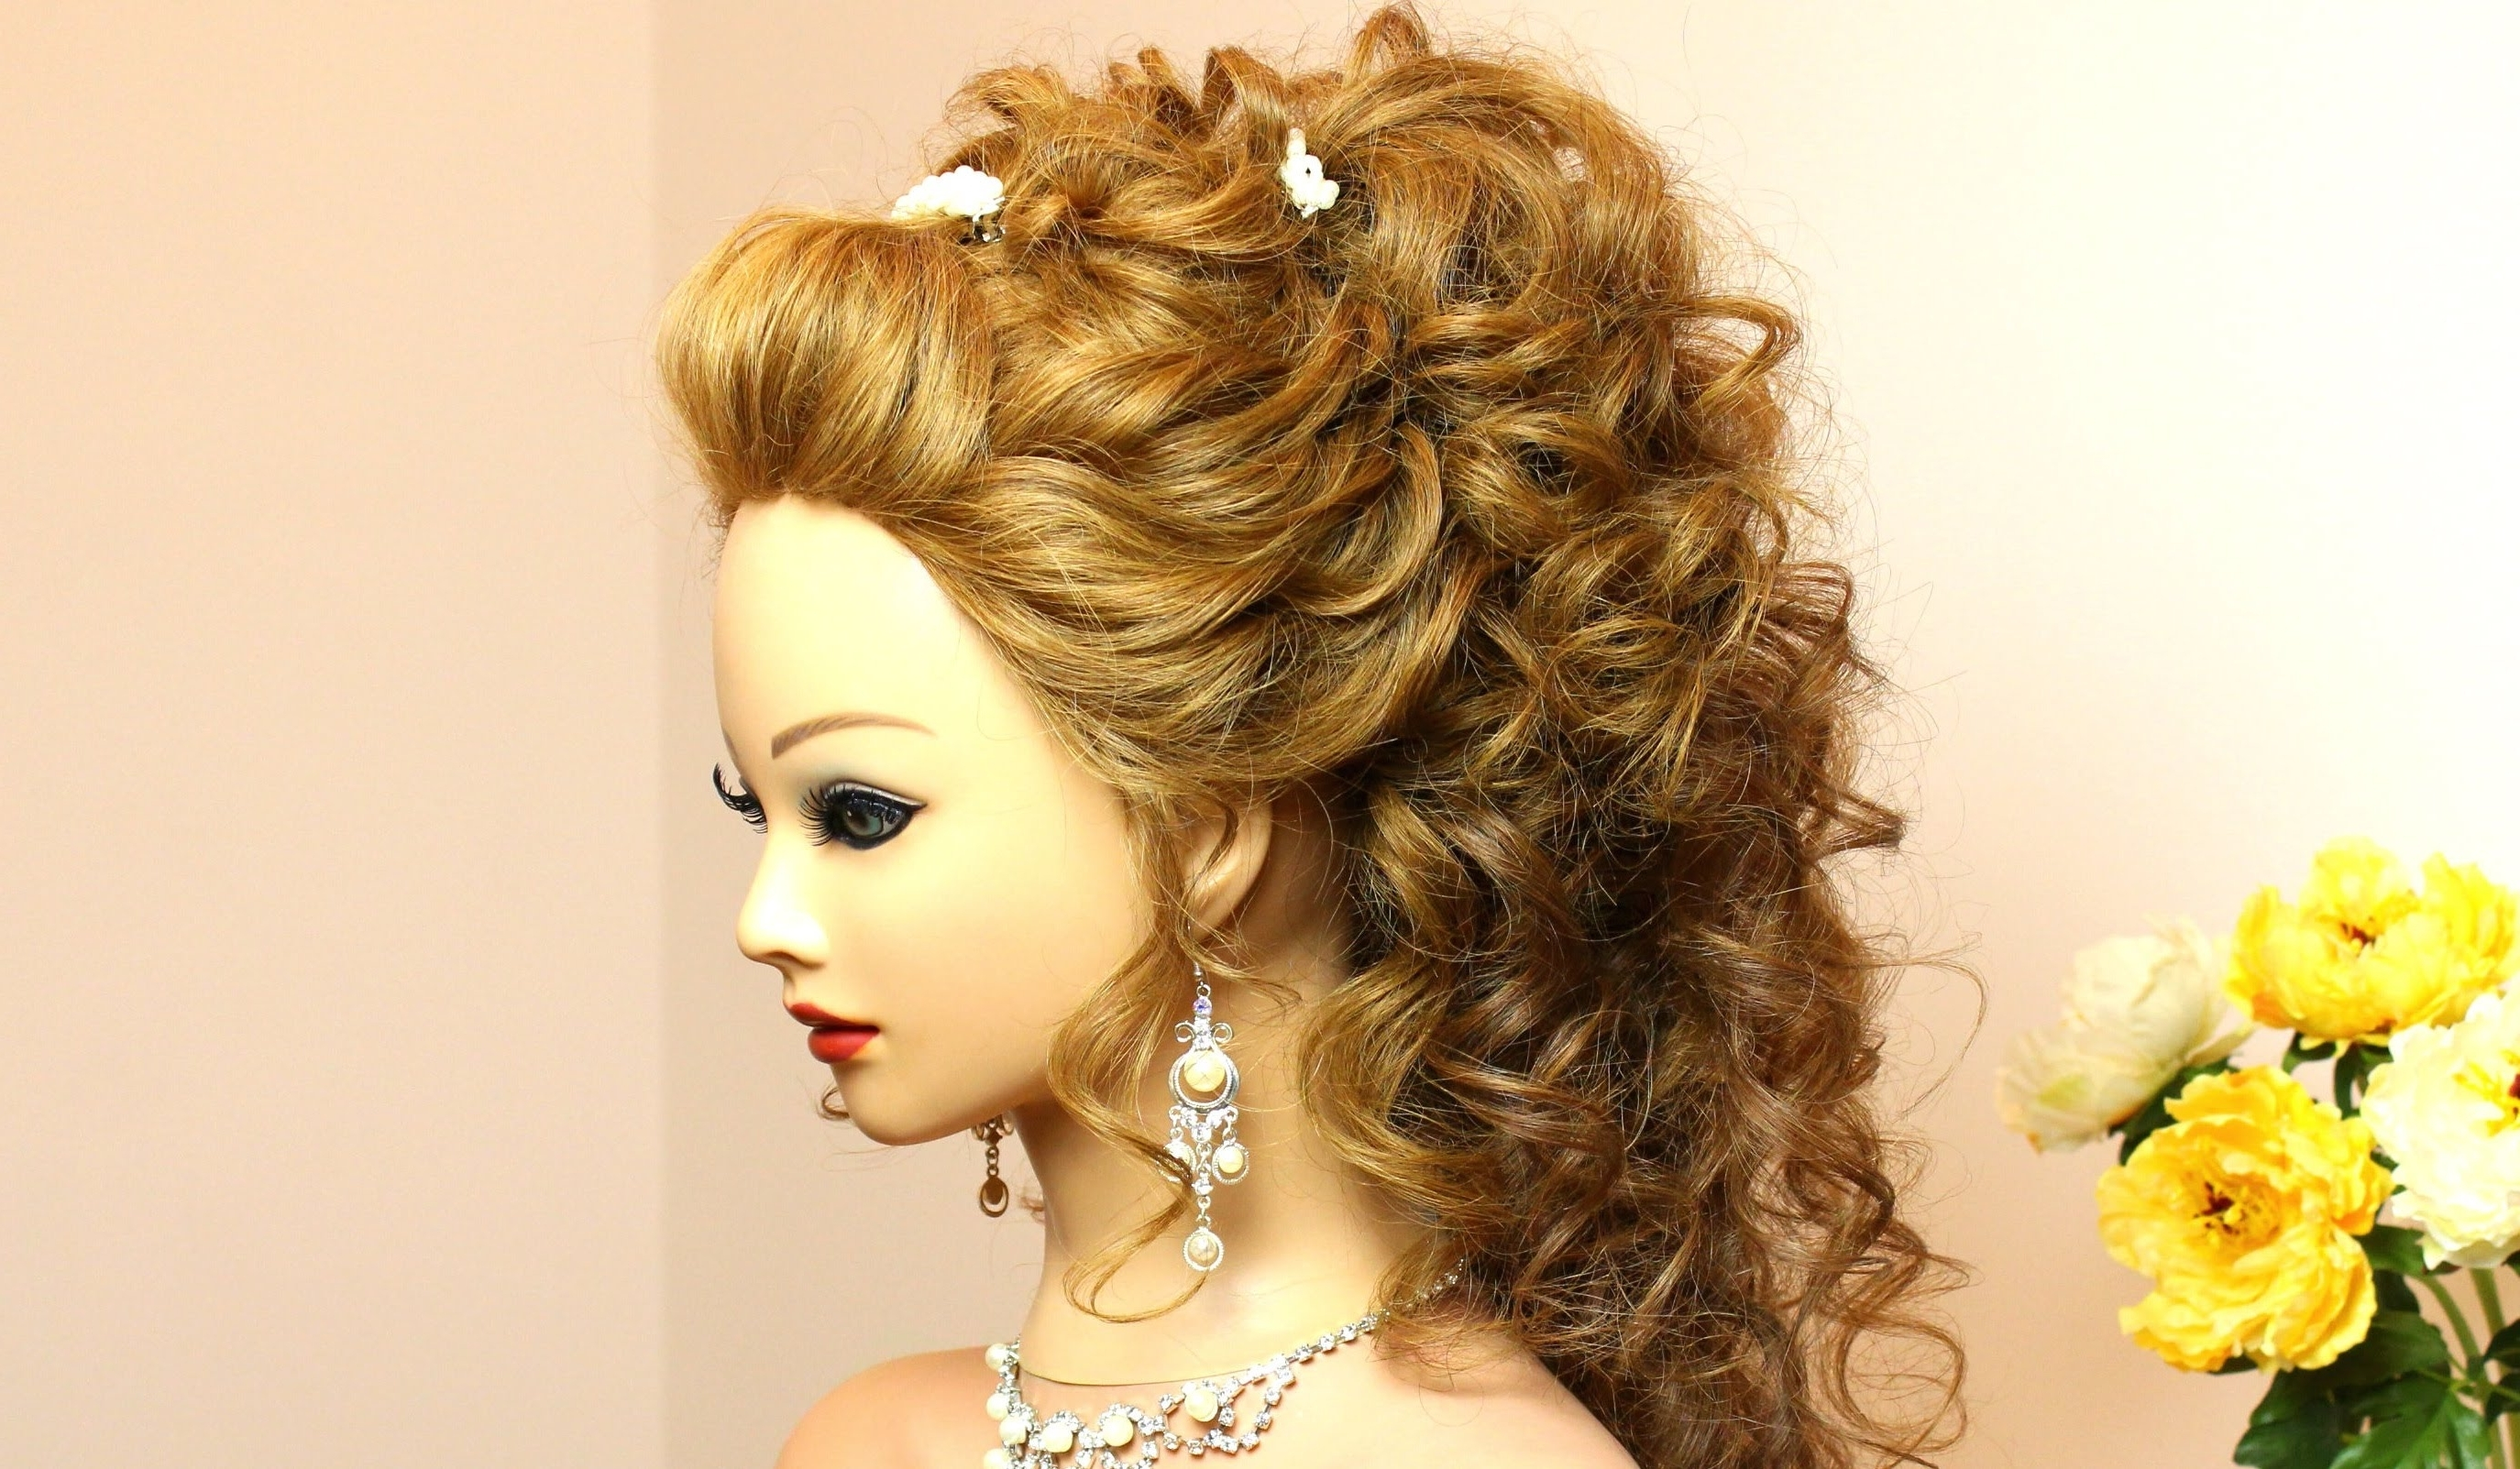 Curly Wedding Hairstyle For Long Hair Tutorial – Youtube Inside Fashionable Wedding Hairstyles For Long Curly Hair (View 5 of 15)